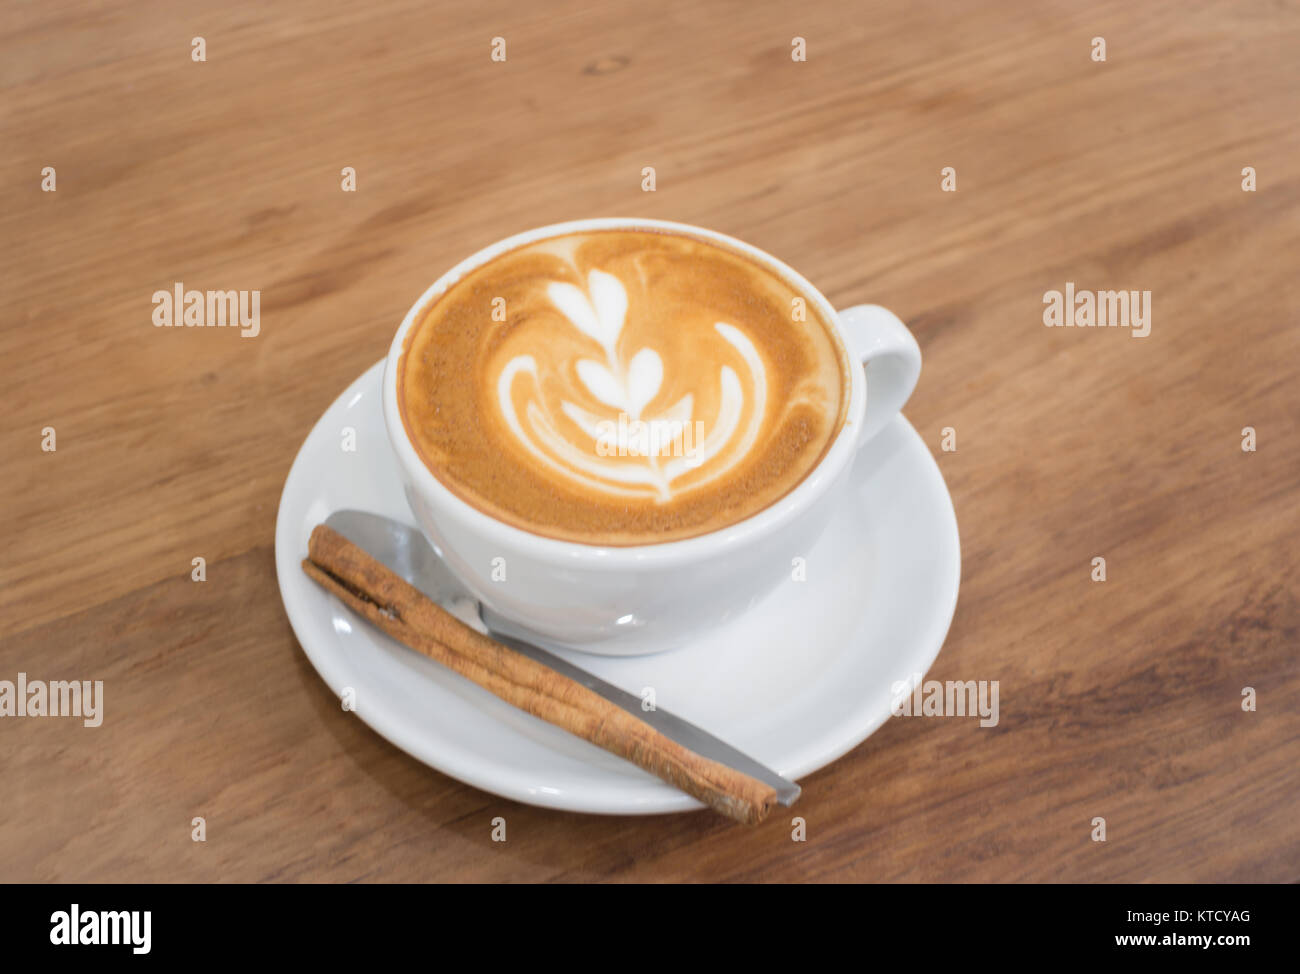 Coffee With Latte Art On Wooden Table - Stock Image